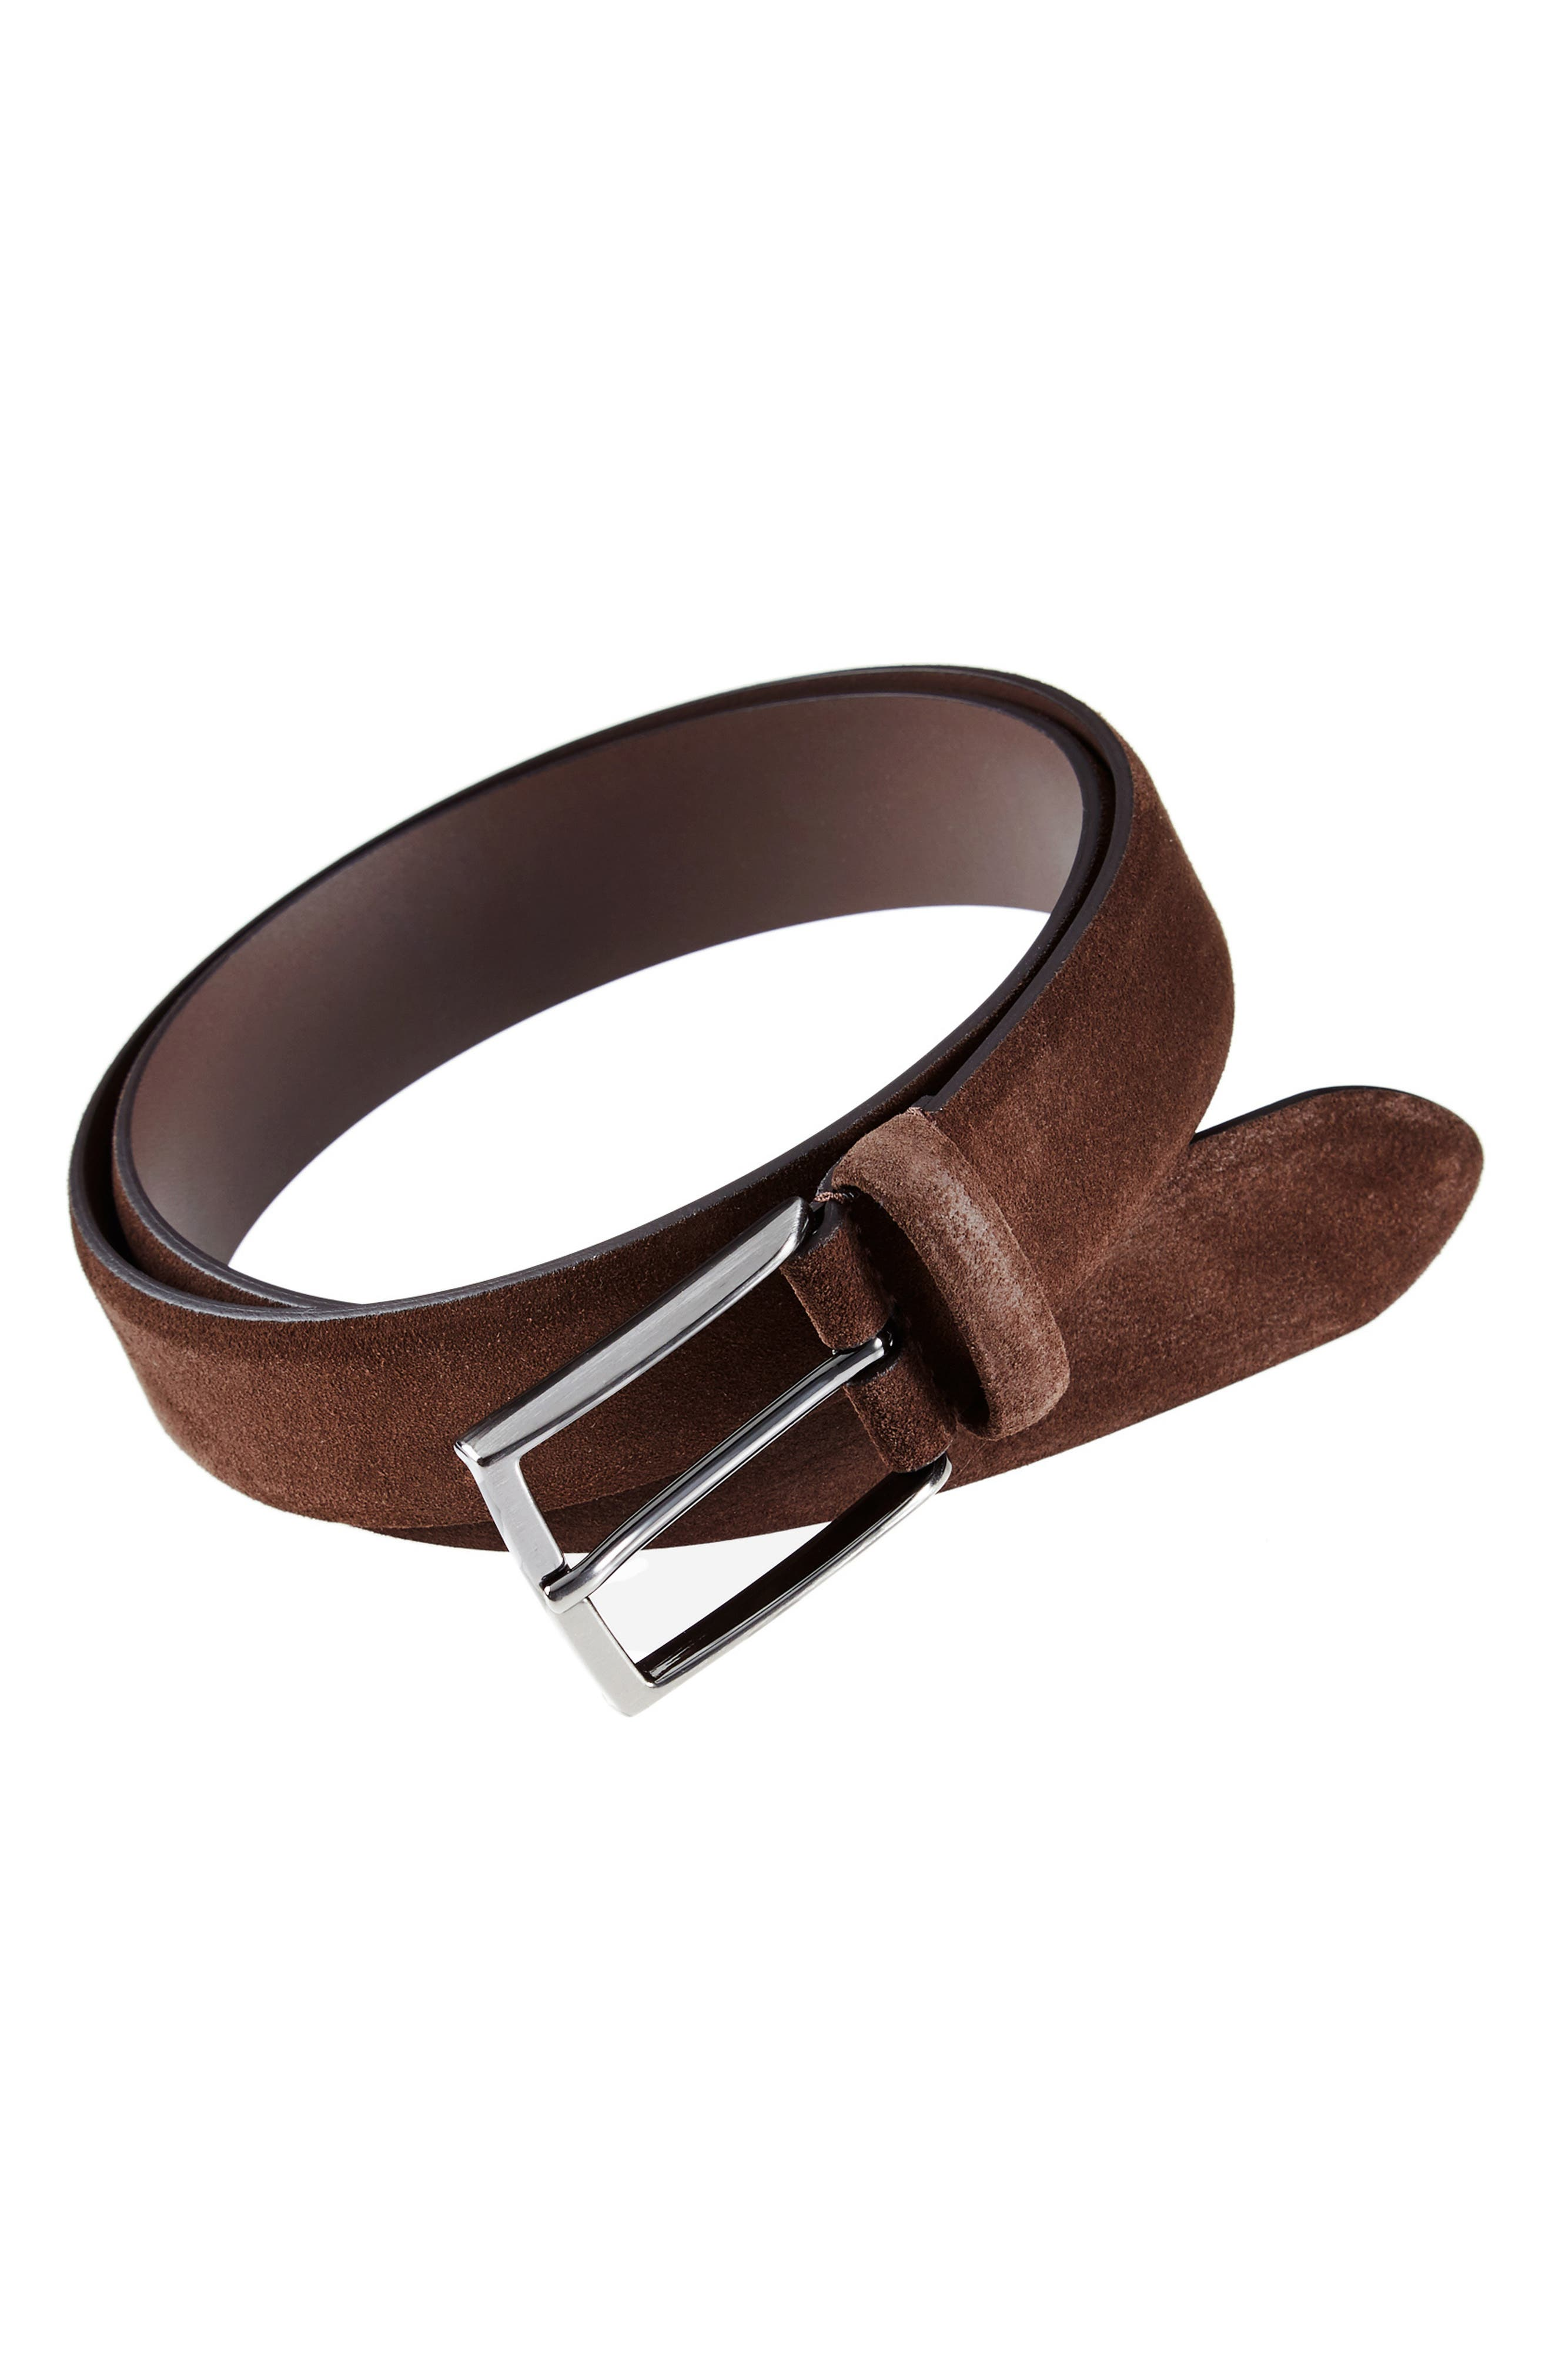 ANDERSONS Suede Belt in Mid Brown